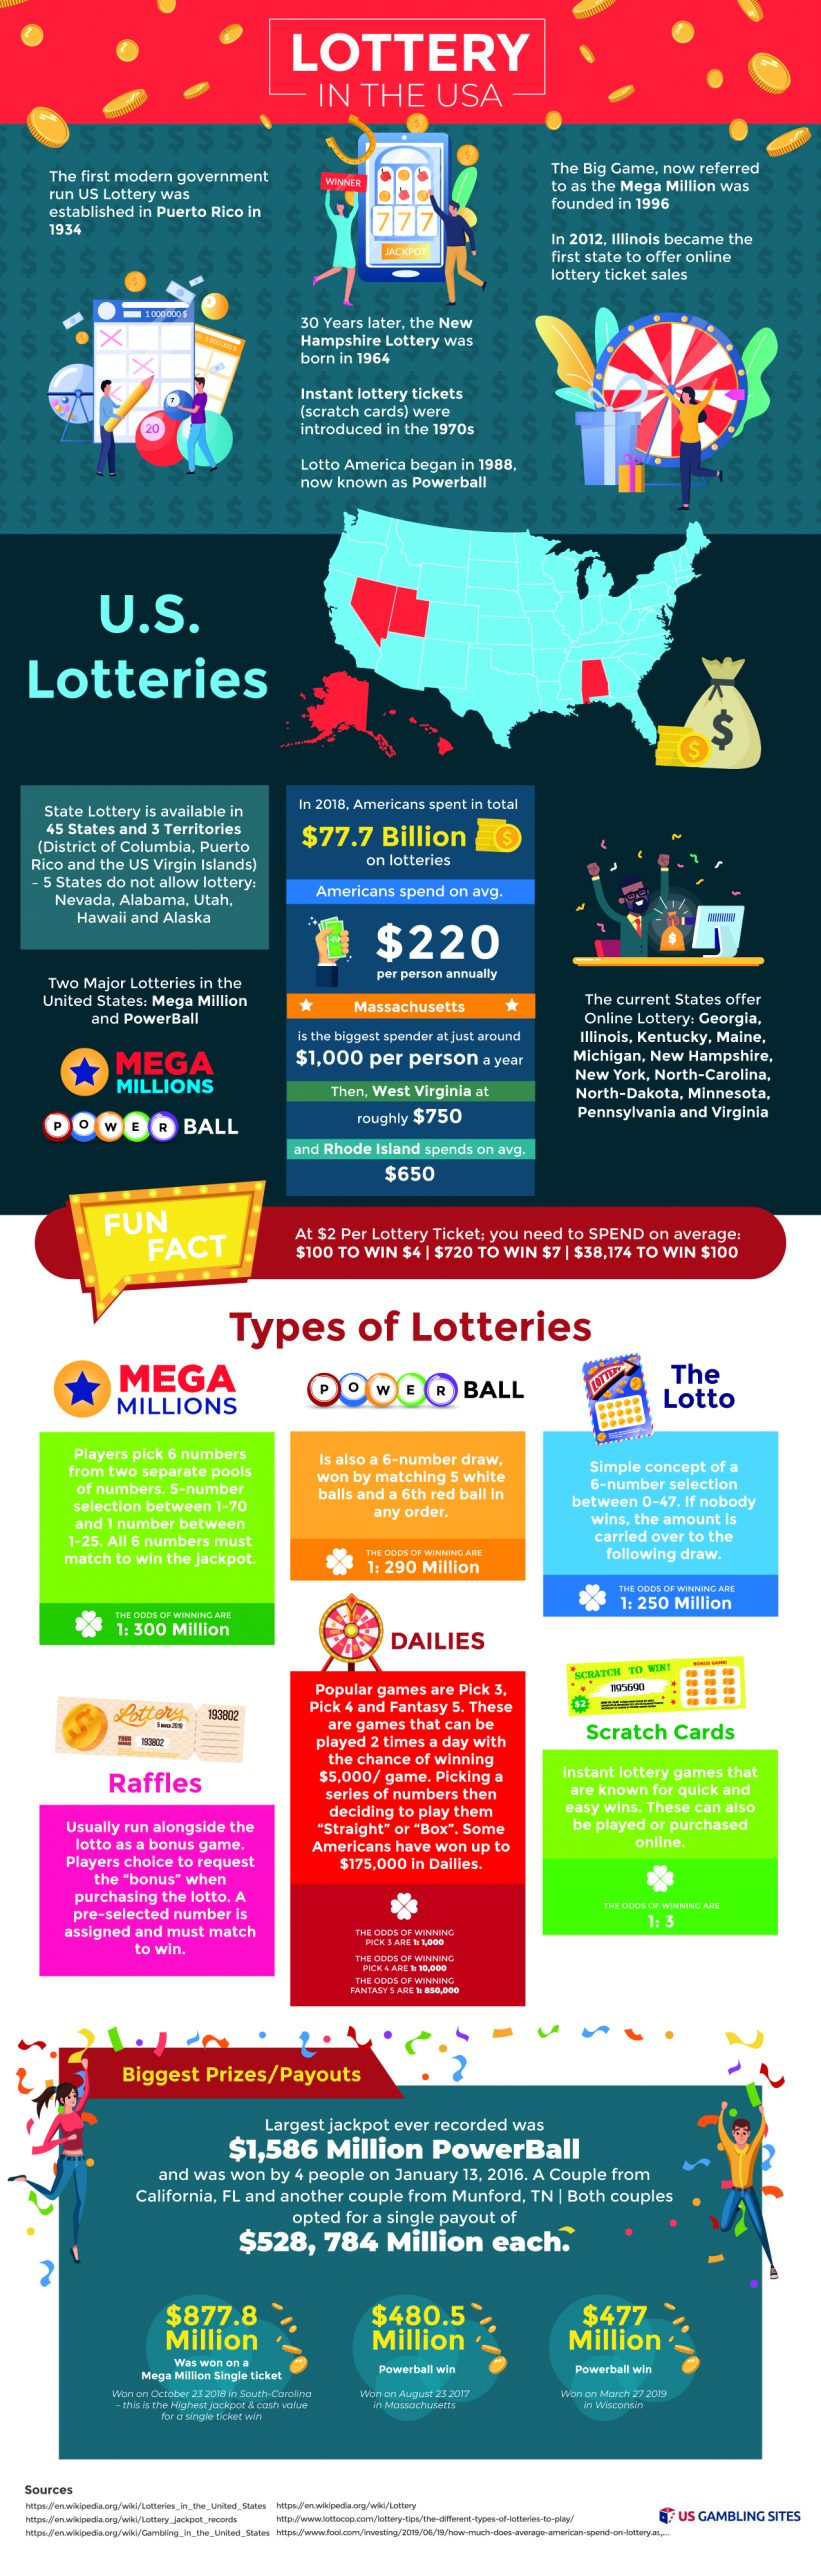 Lottery Statistics & History in the USA